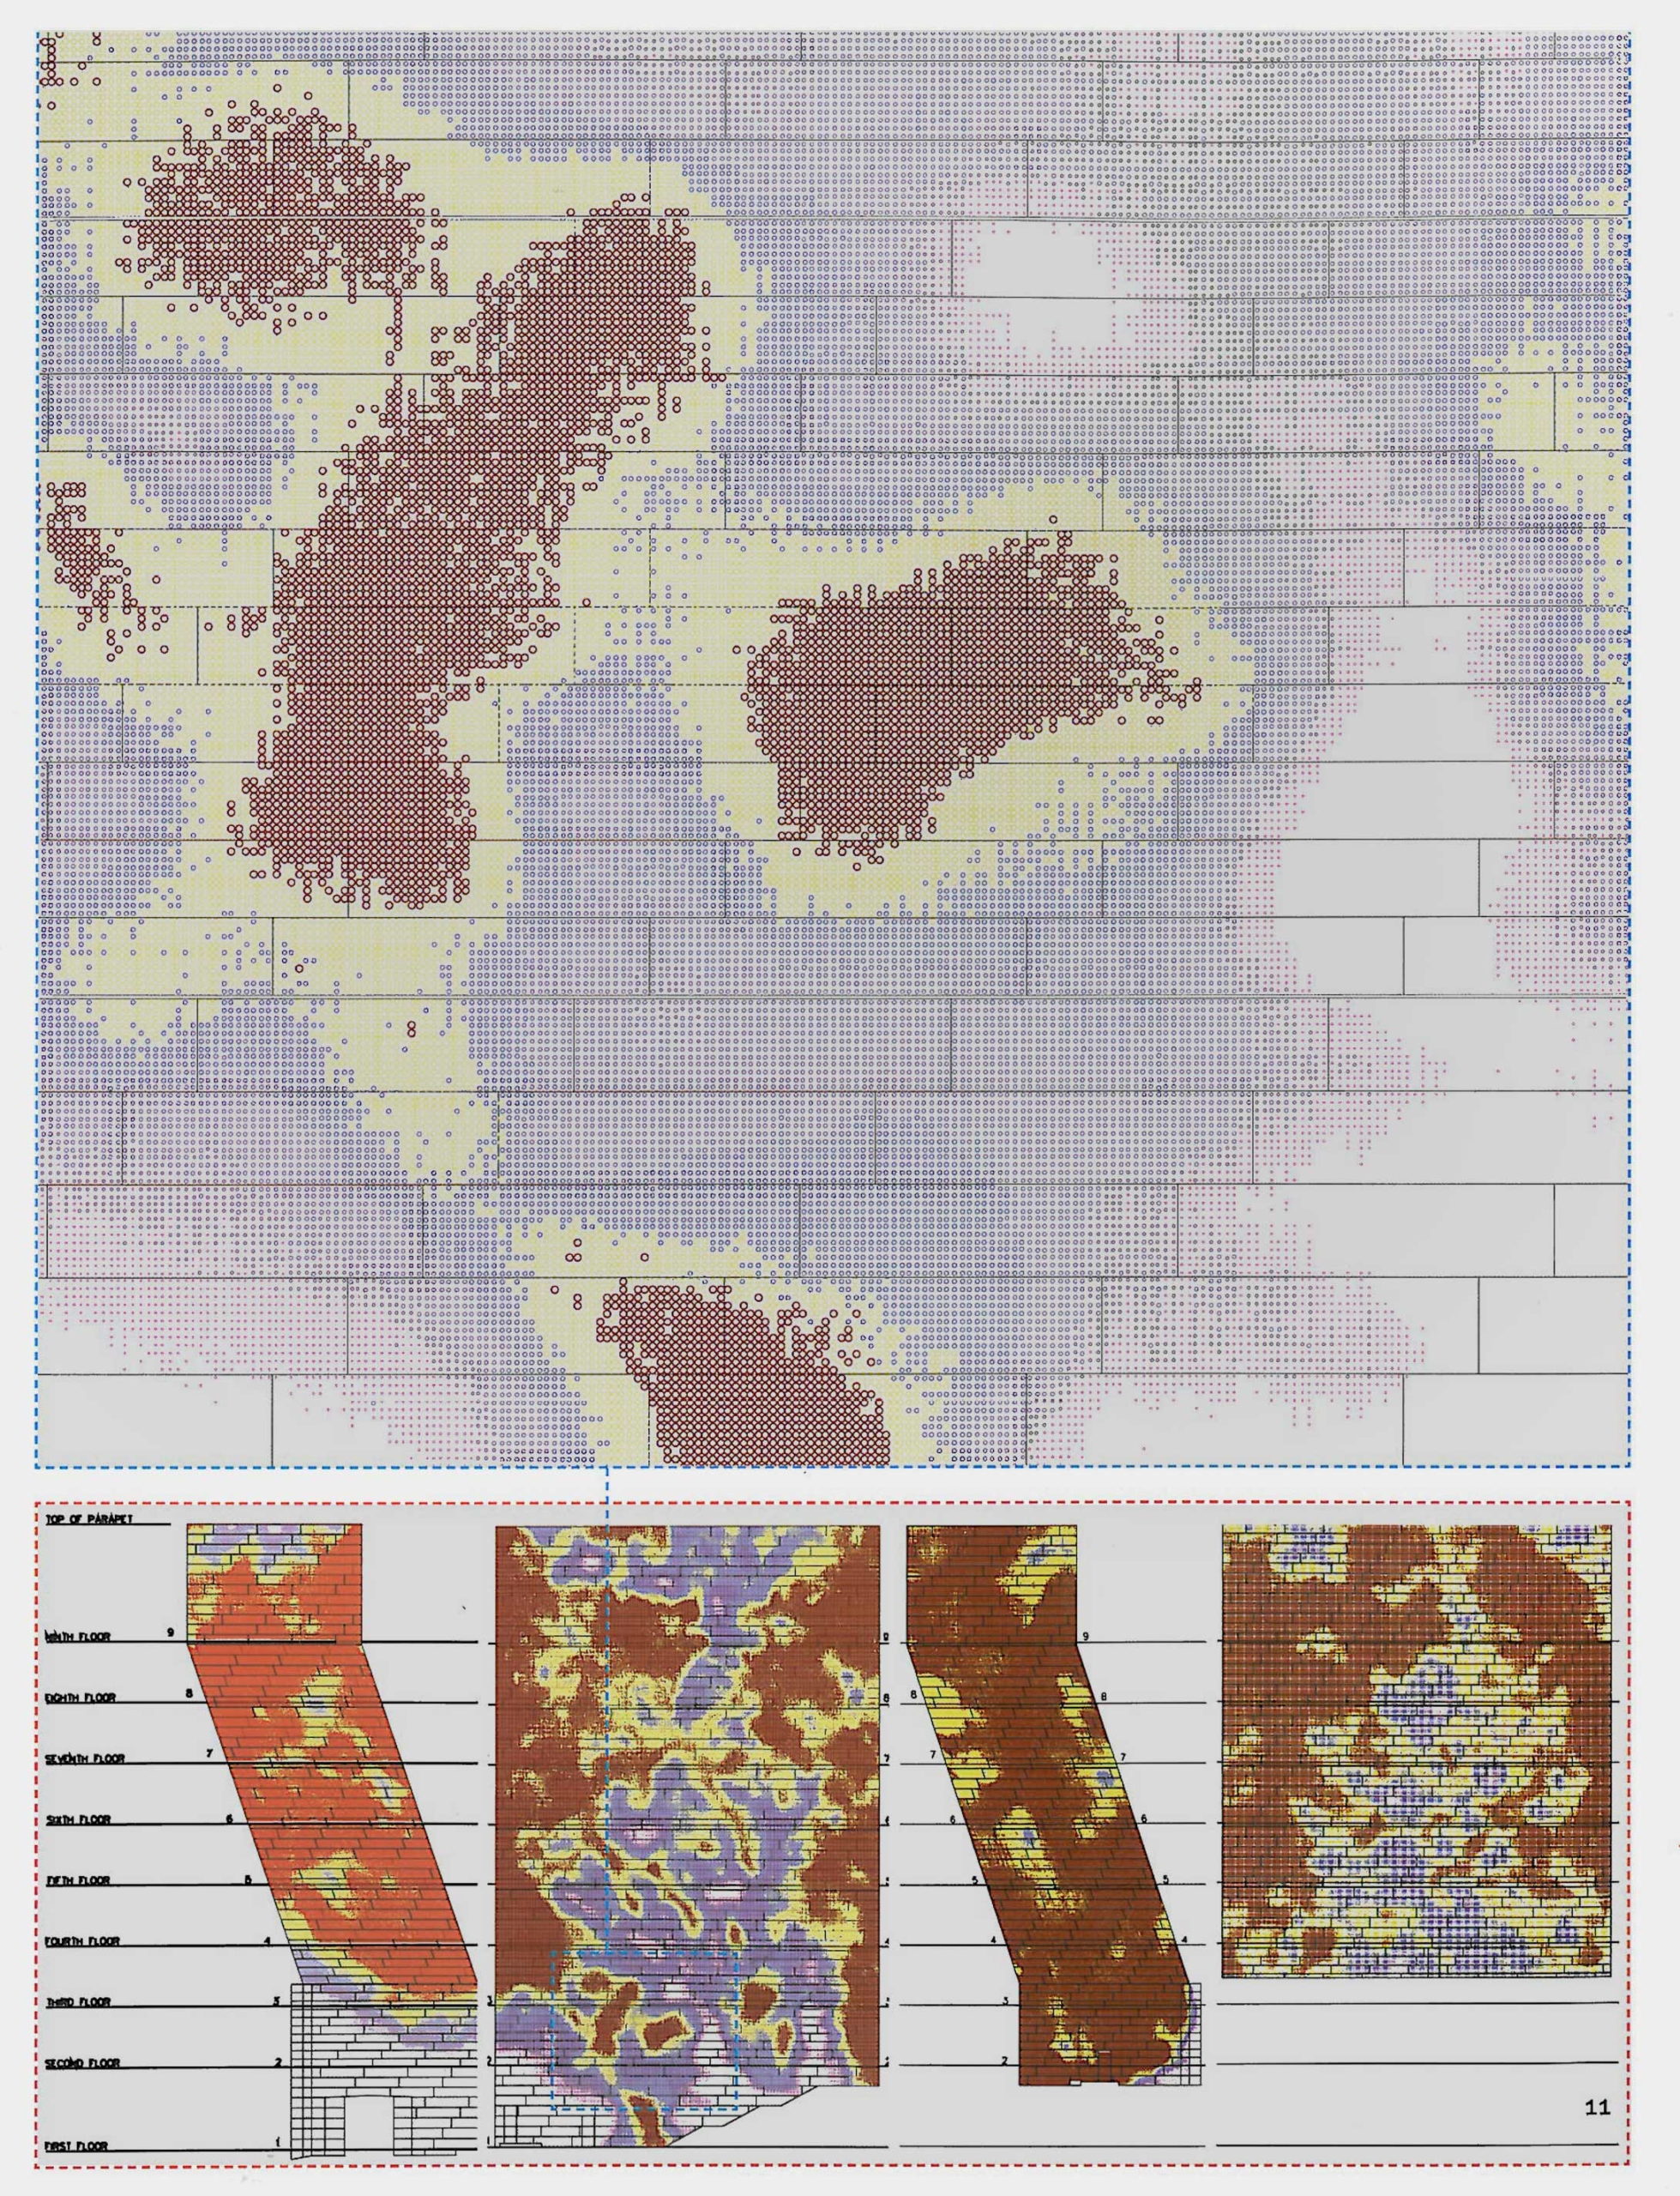 Heat maps of the perforations required for ventilation on the museum's facade.